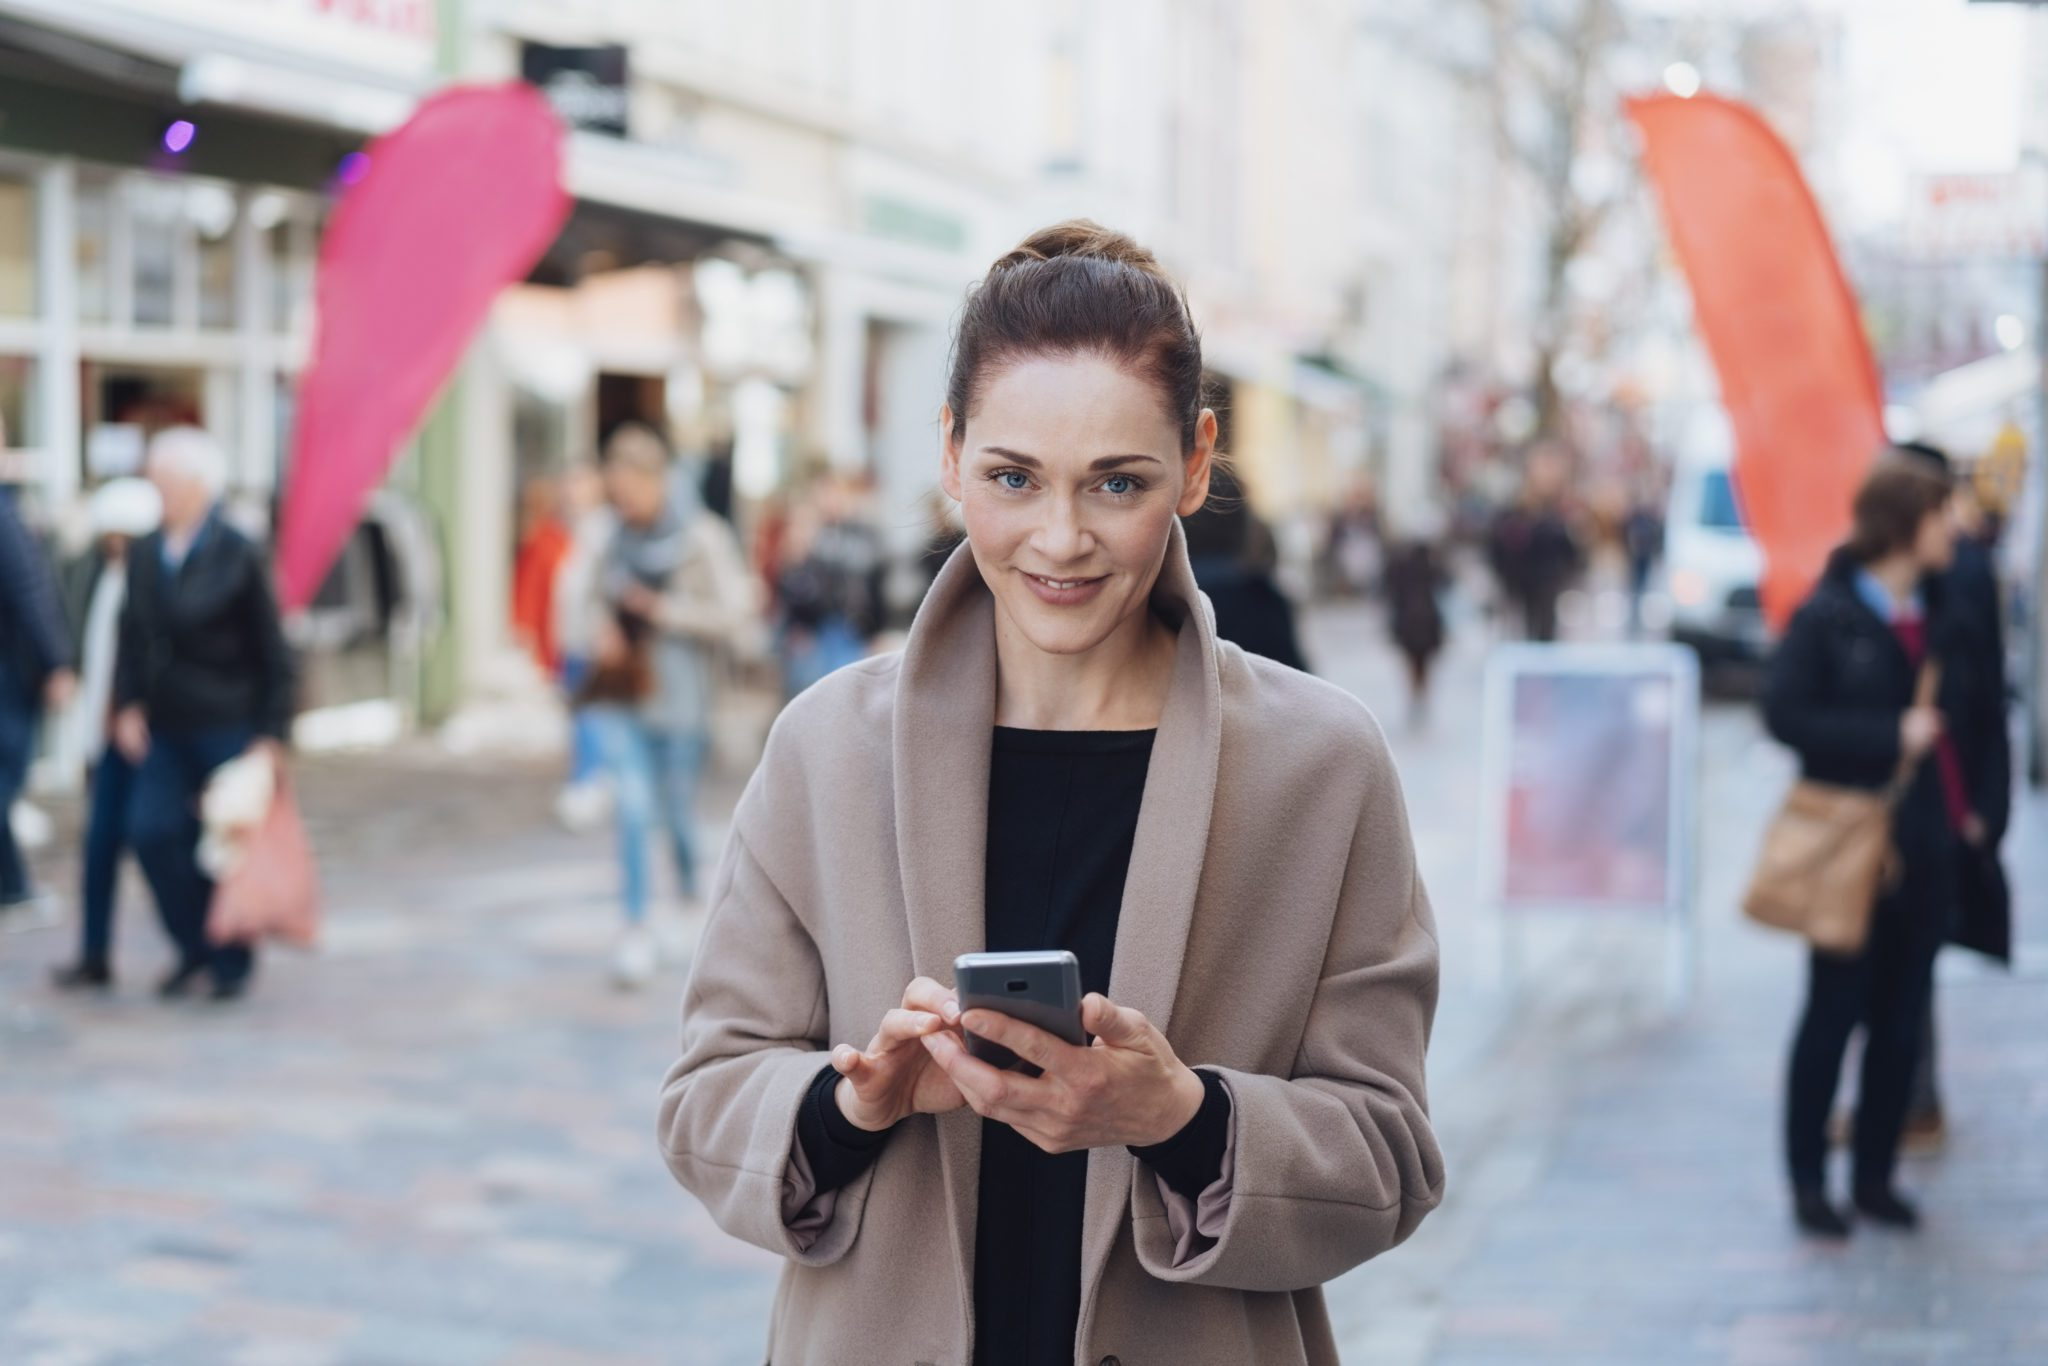 Street portrait of young smiling woman wearing grey coat using phone